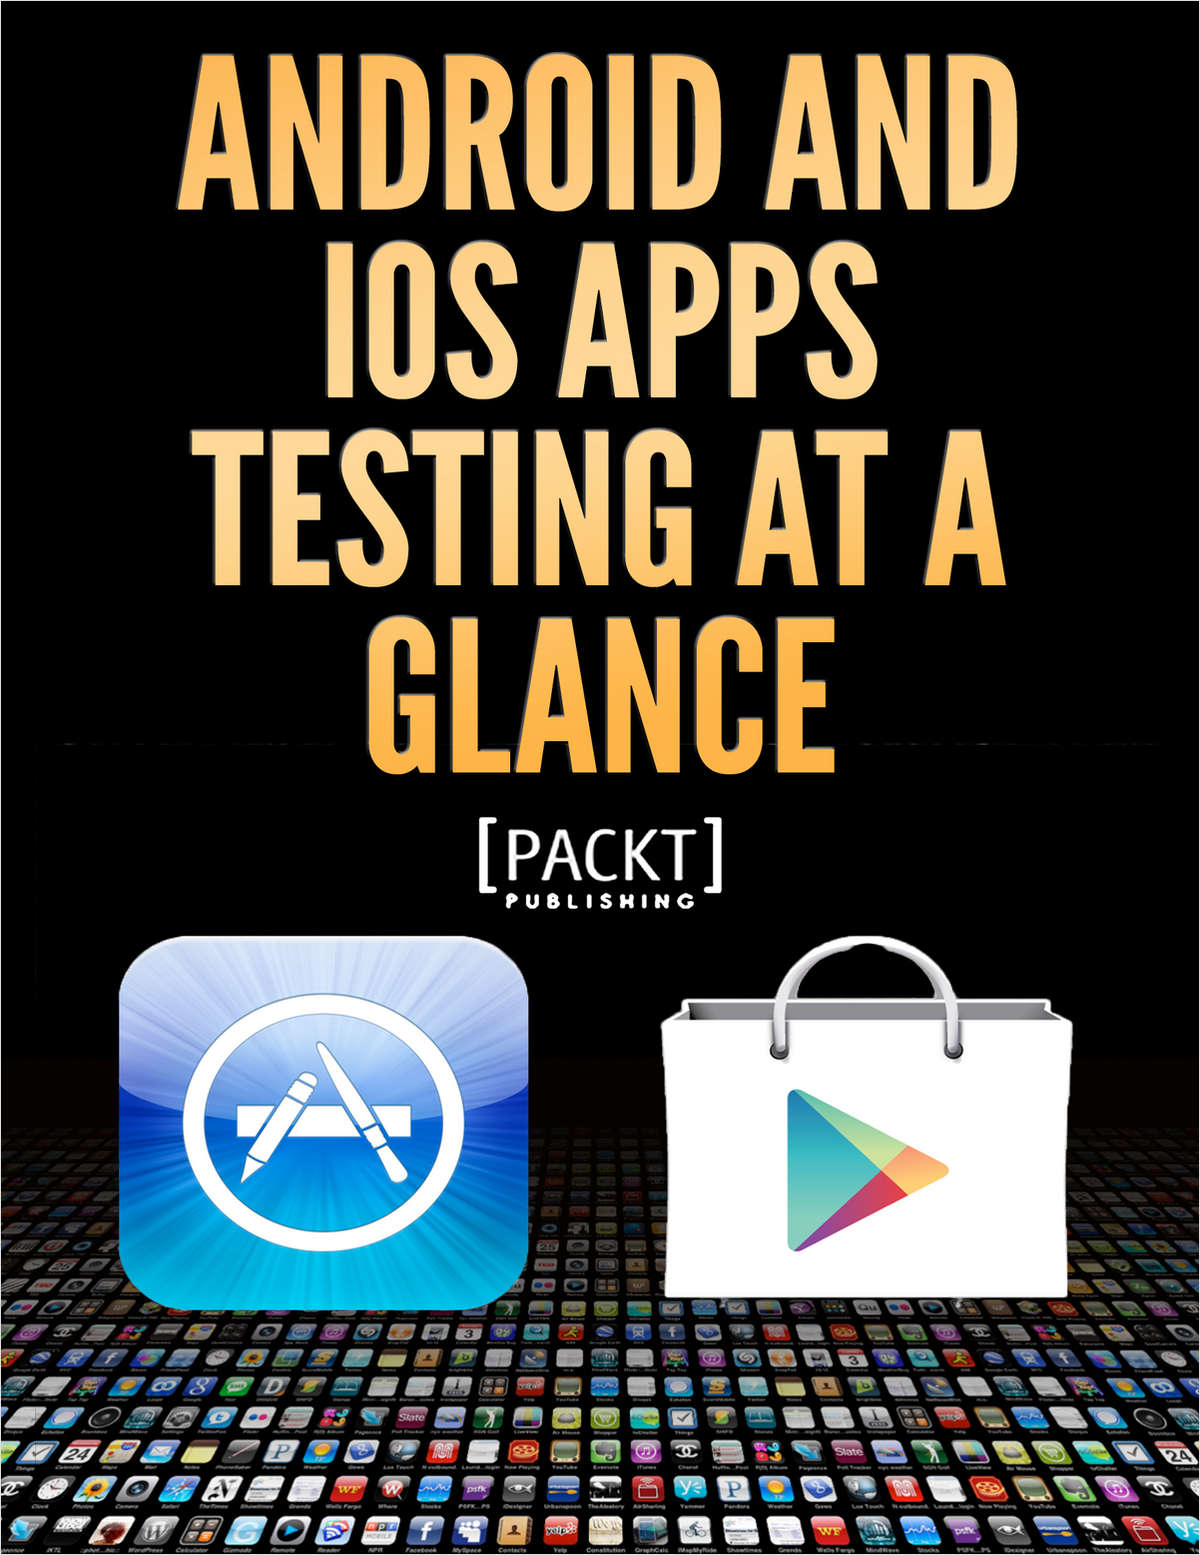 Android and iOS Apps Testing at a Glance